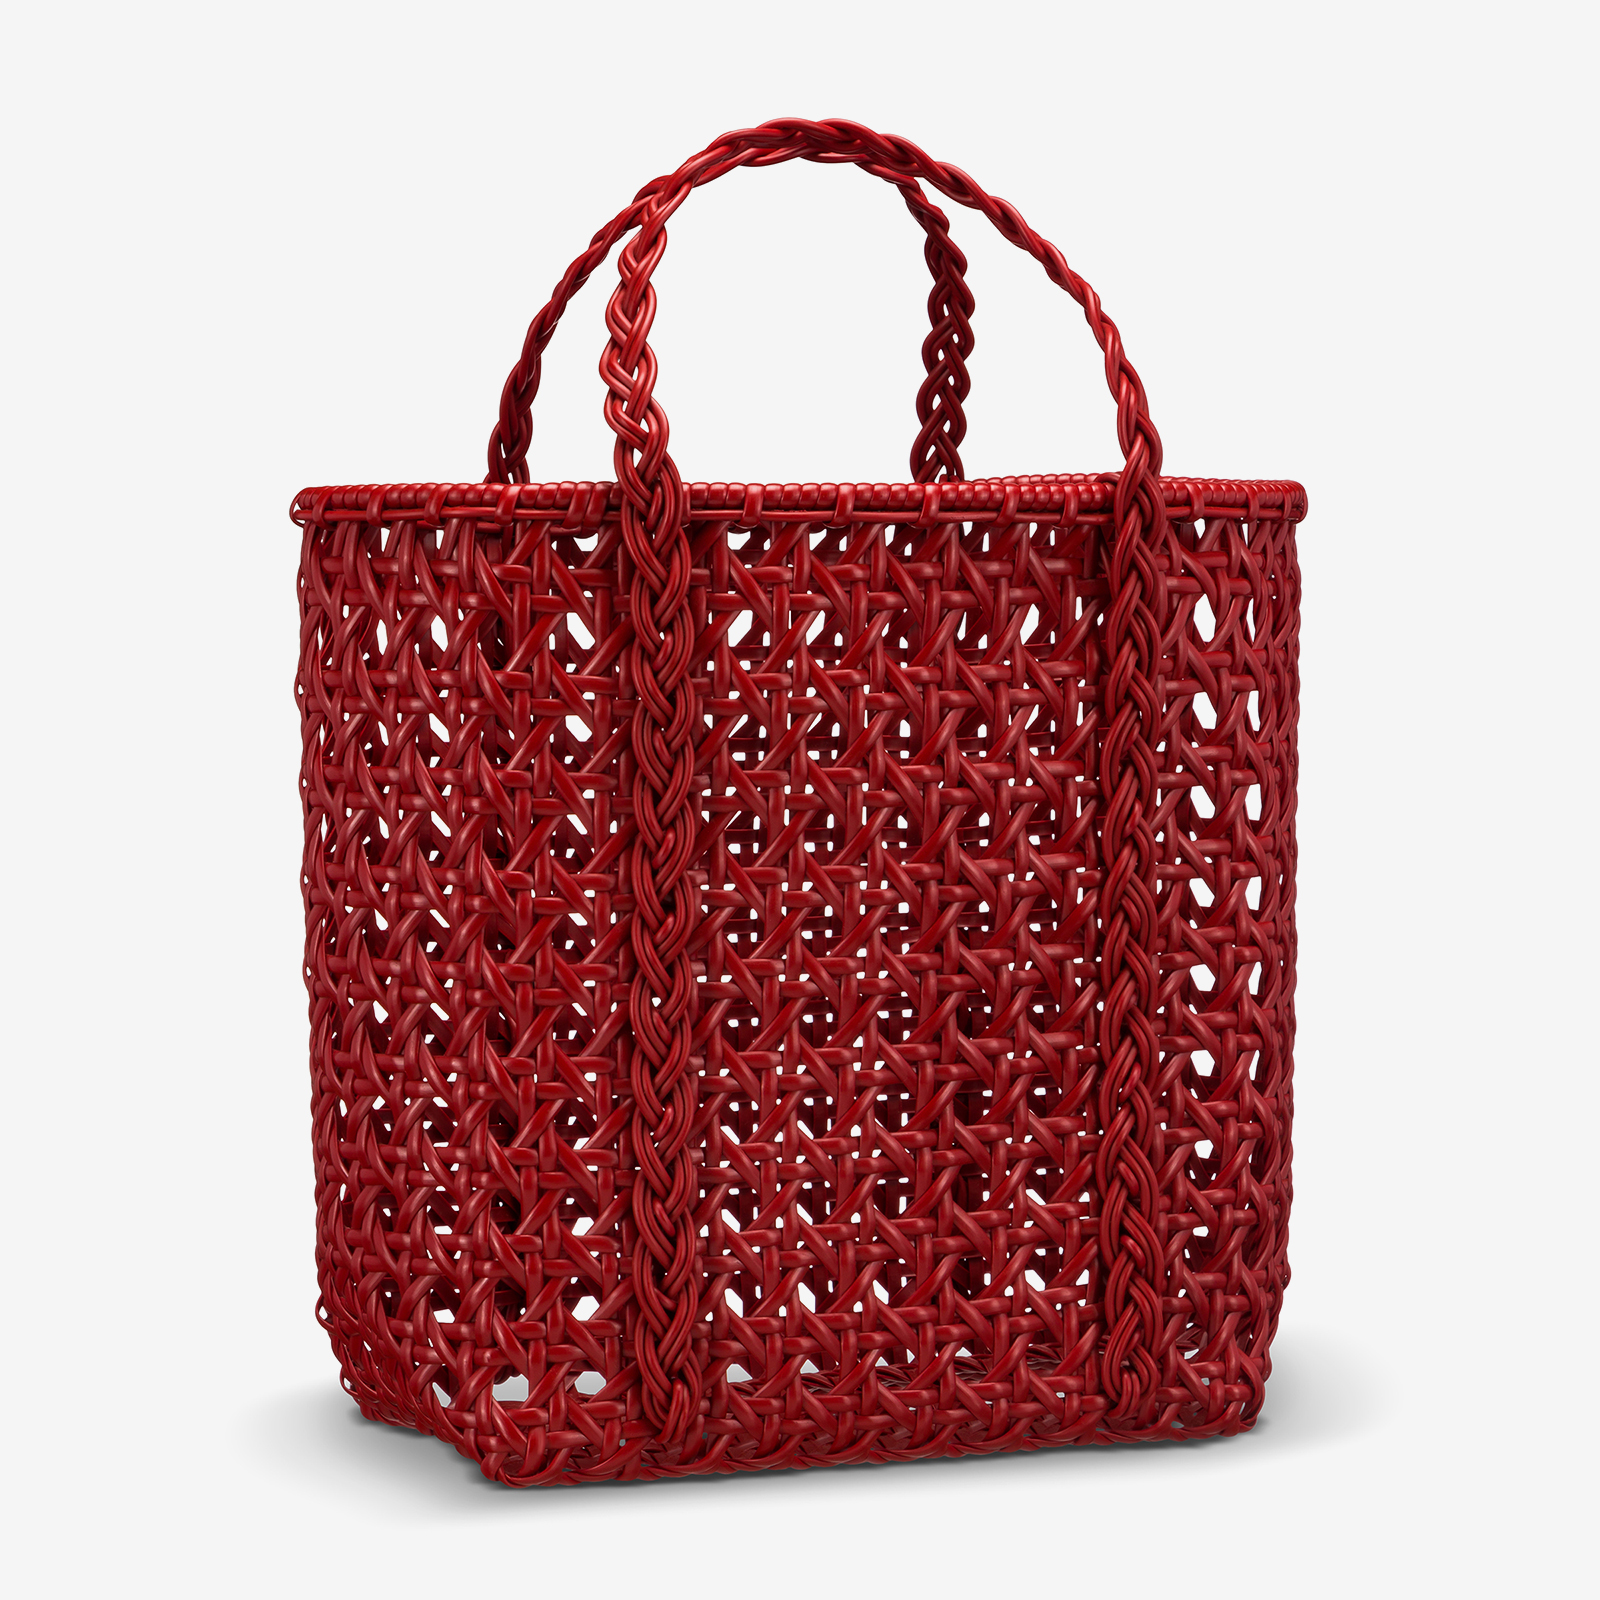 Handbag product picture